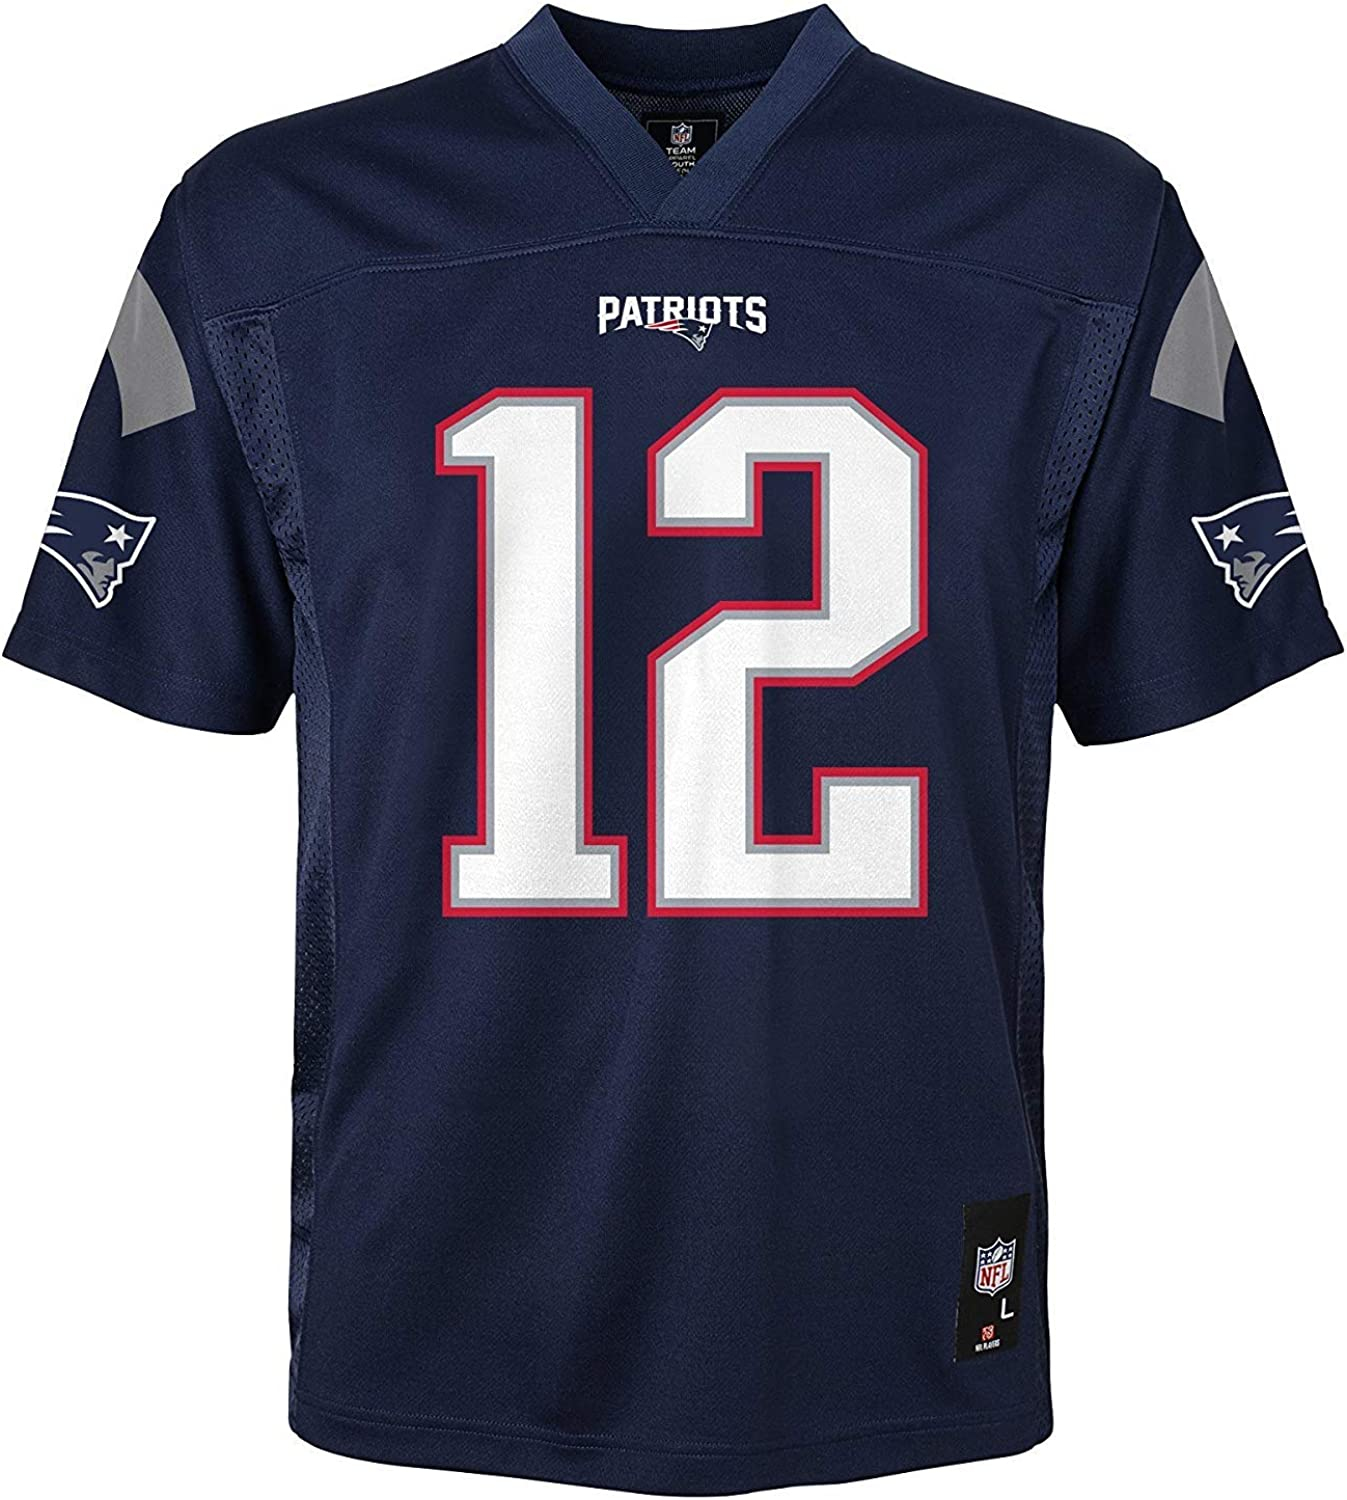 NFL New England Patriots Youth 13 14 Years Boys Kids Official Team Apparel